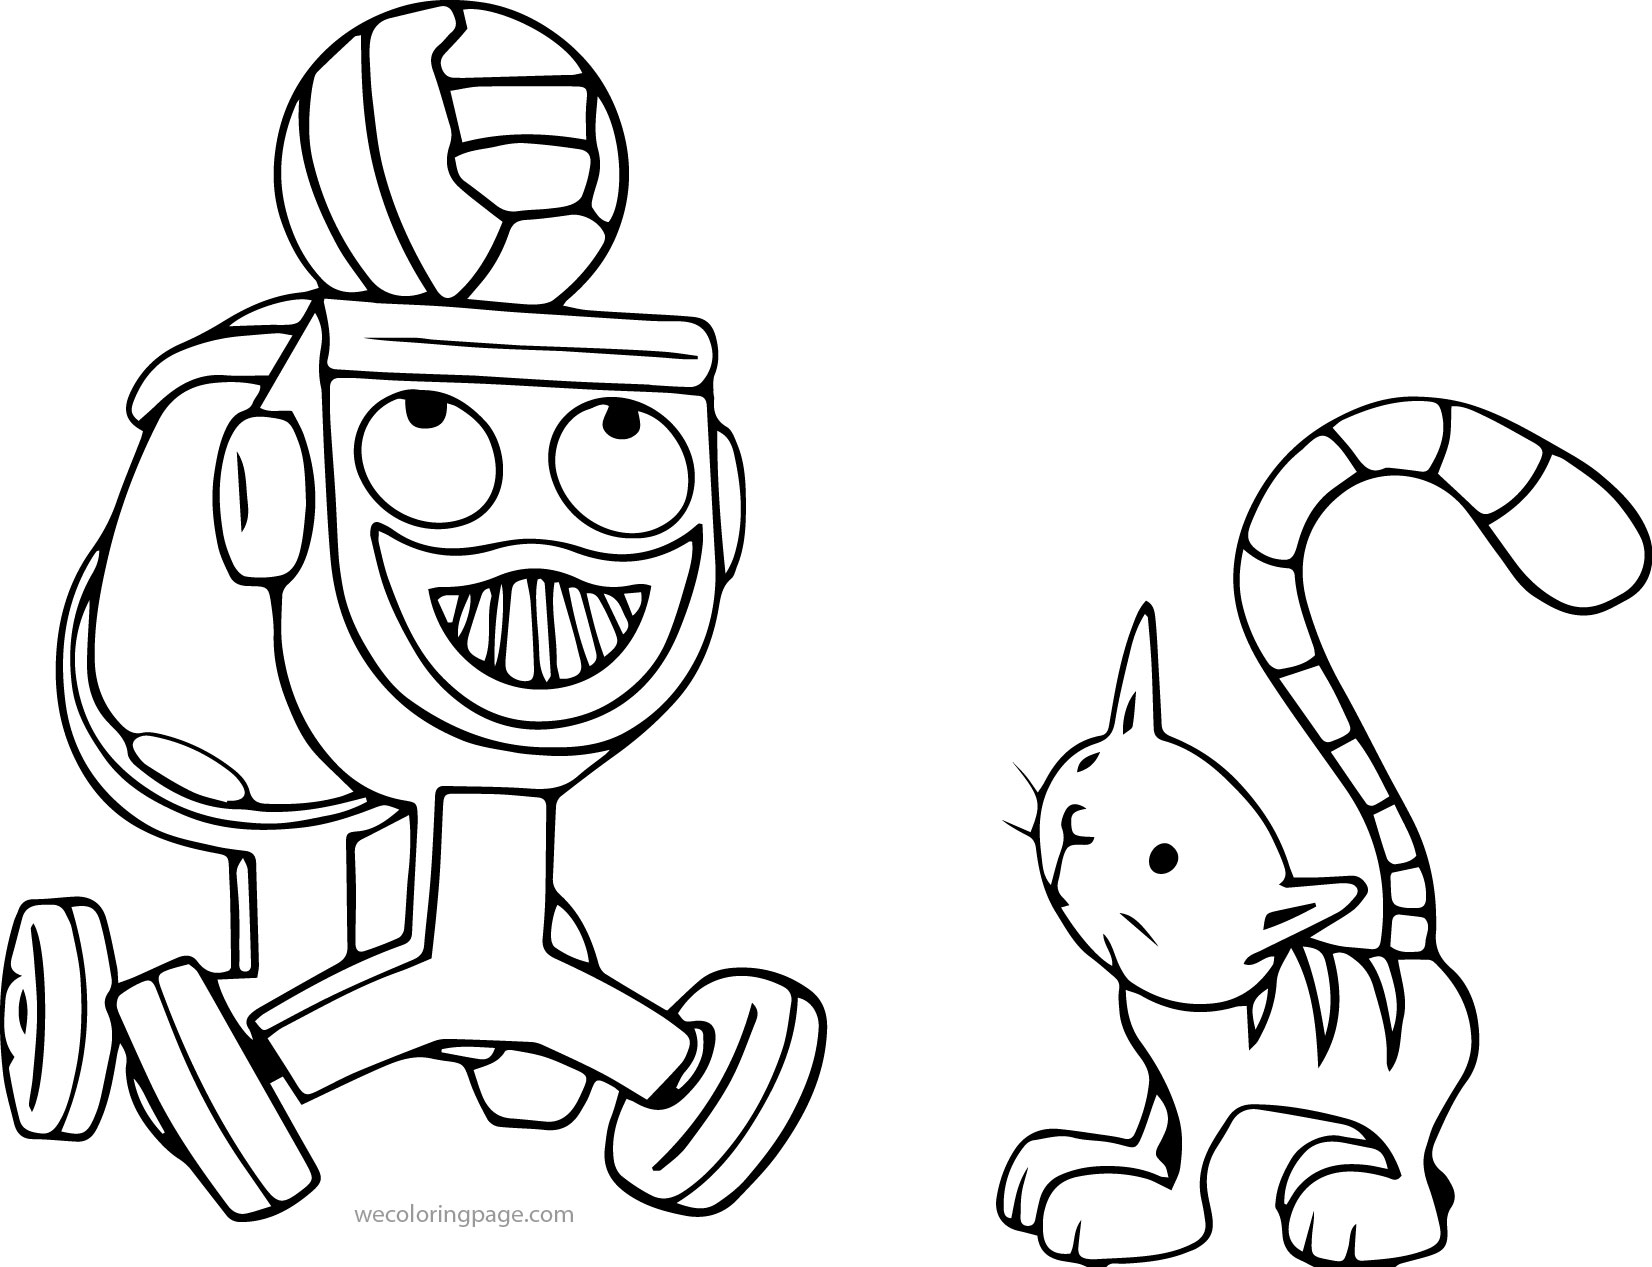 Dizzy Playing Ball With Cad Coloring Page